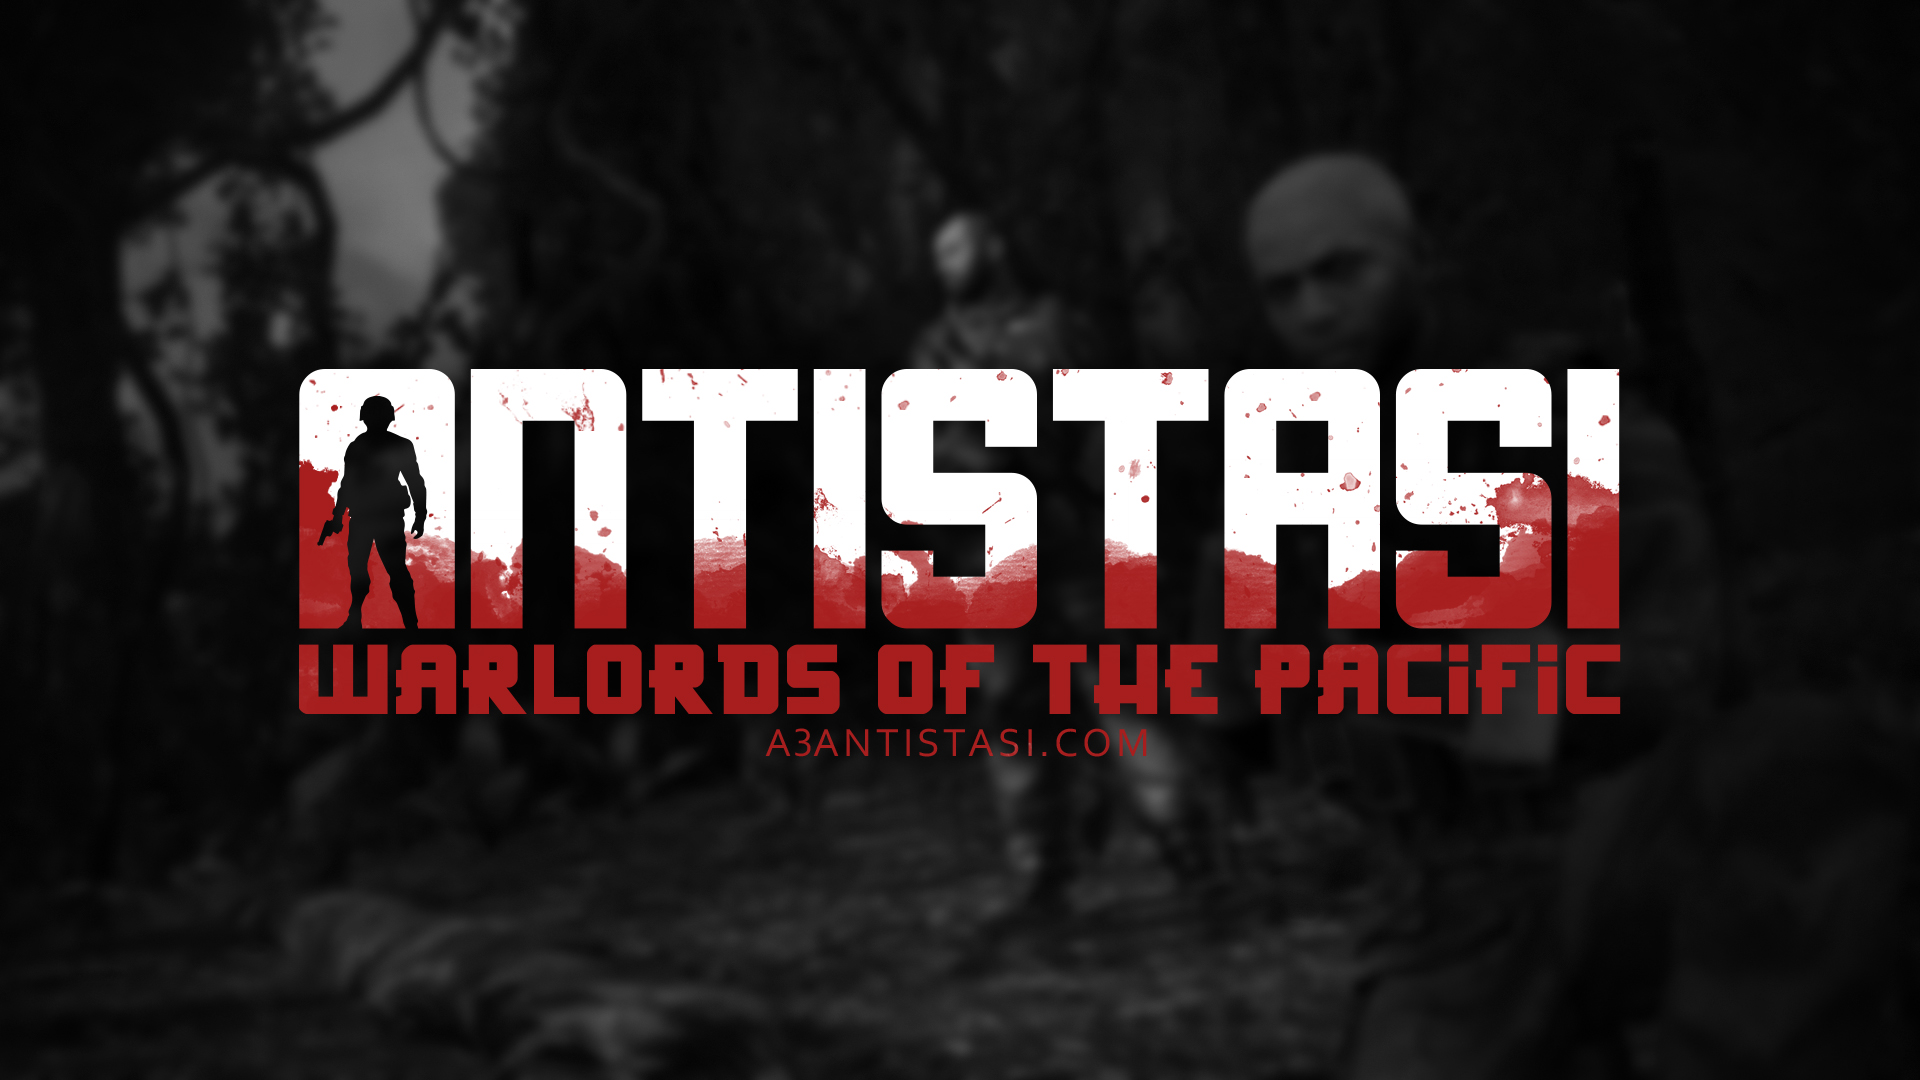 Antistasi - Warlords of the Pacific